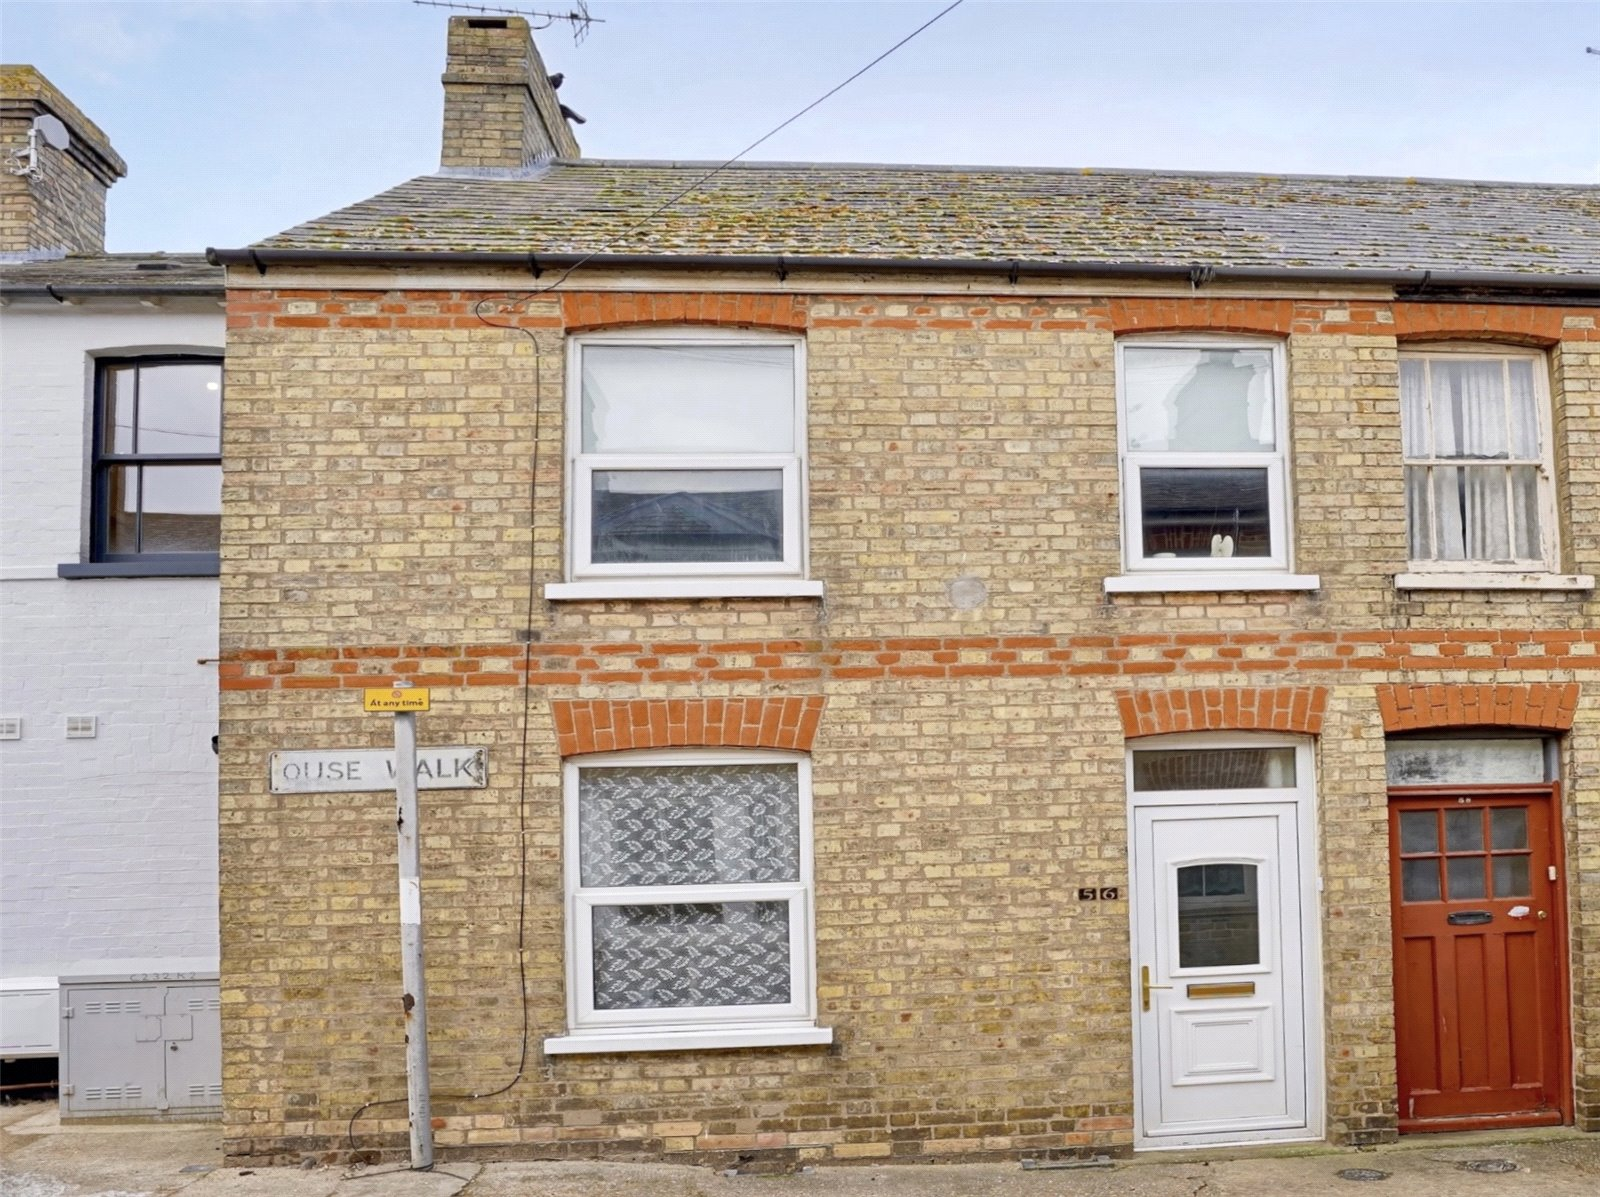 3 bed house for sale in Huntingdon, PE29 3QW  - Property Image 1